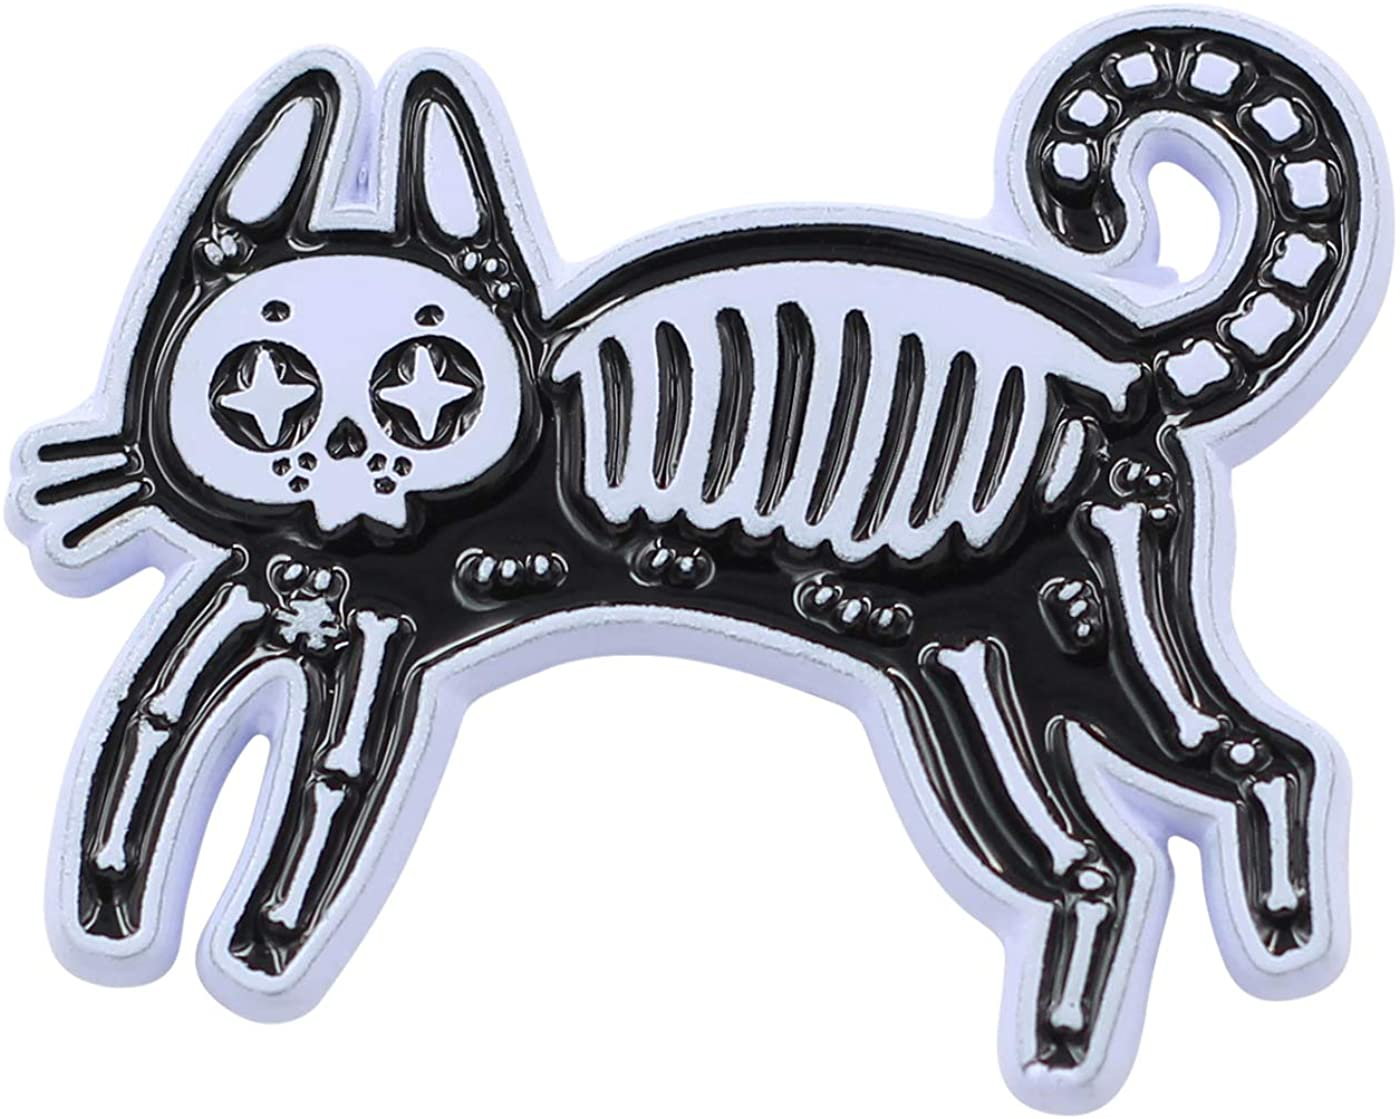 Real Sic Skeleton Cat Pin - Occult Black Cat Lapel Pin - Halloween Witch Enamel Pin Accessory for Jackets, Backpacks, Hats, Bags & Tops